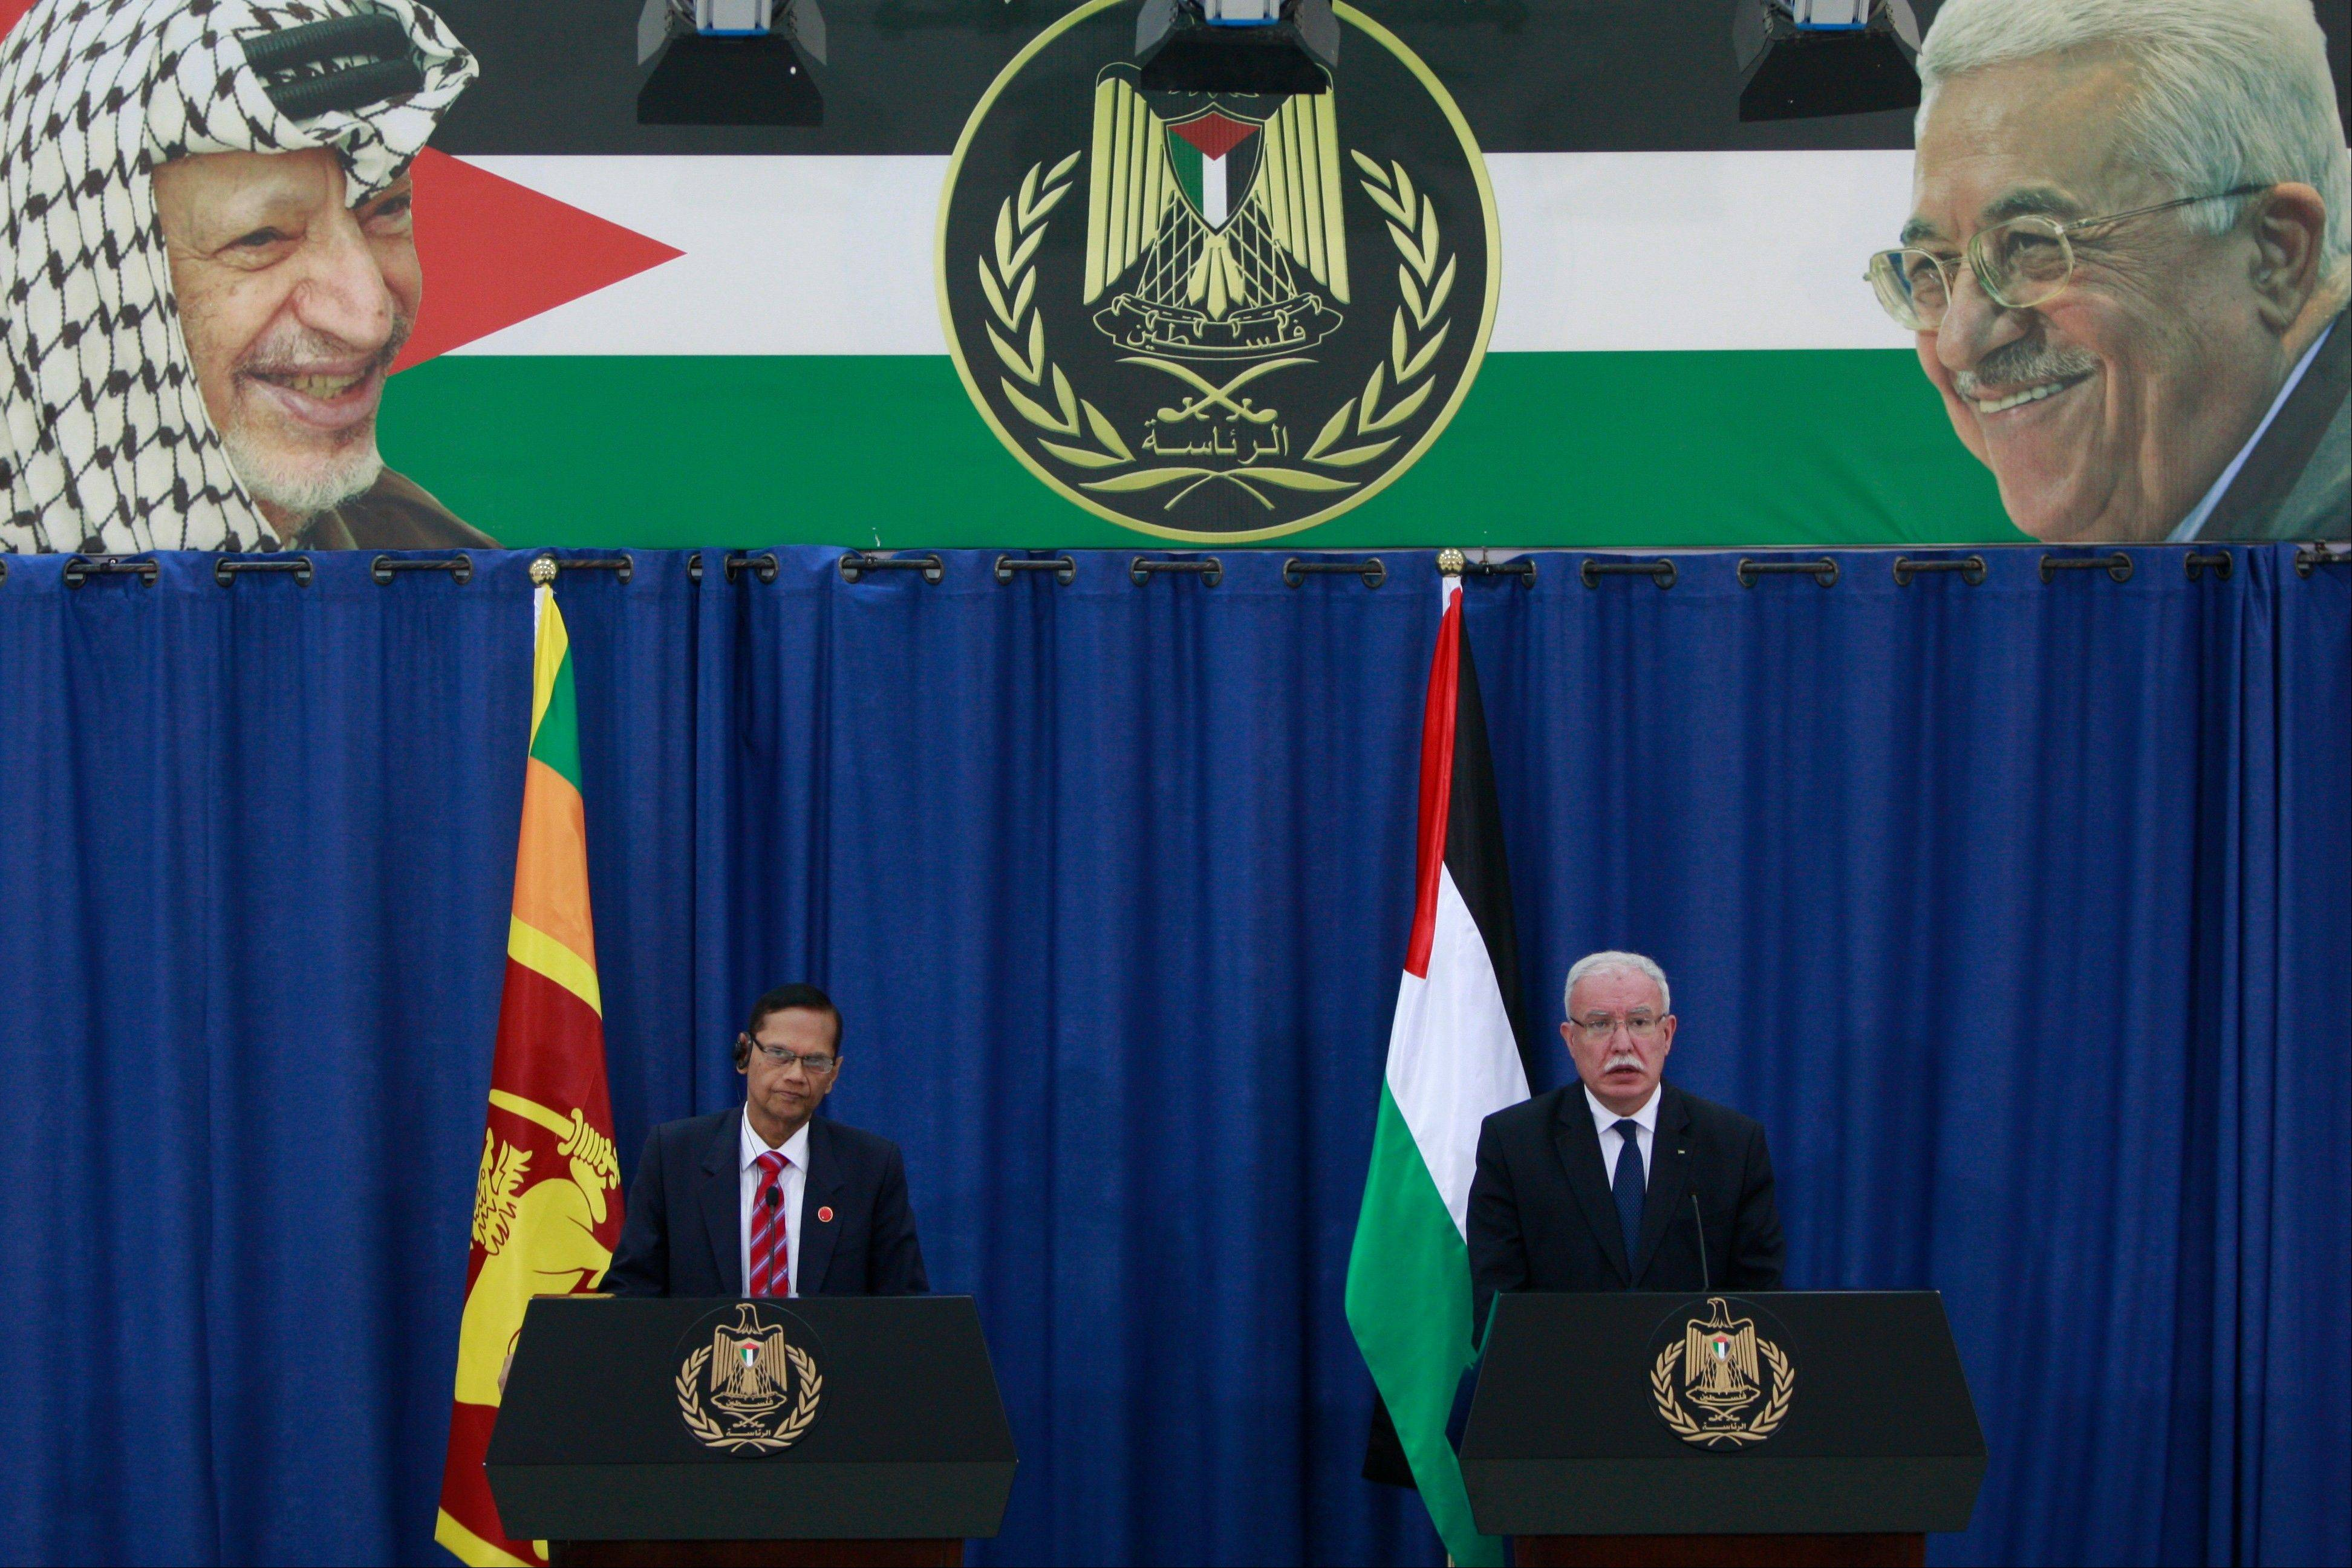 Sri Lanka's foreign minister Gamini Peiris, left, with his Palestinian counterpart Riad al-Malki during a joint press conference in the West Bank city of Ramallah, Monday. Portraits of the late Palestinian leader, Yasser Arafat, left, and Palestinian President Mahmoud Abbas, right, are seen in a banner at top.